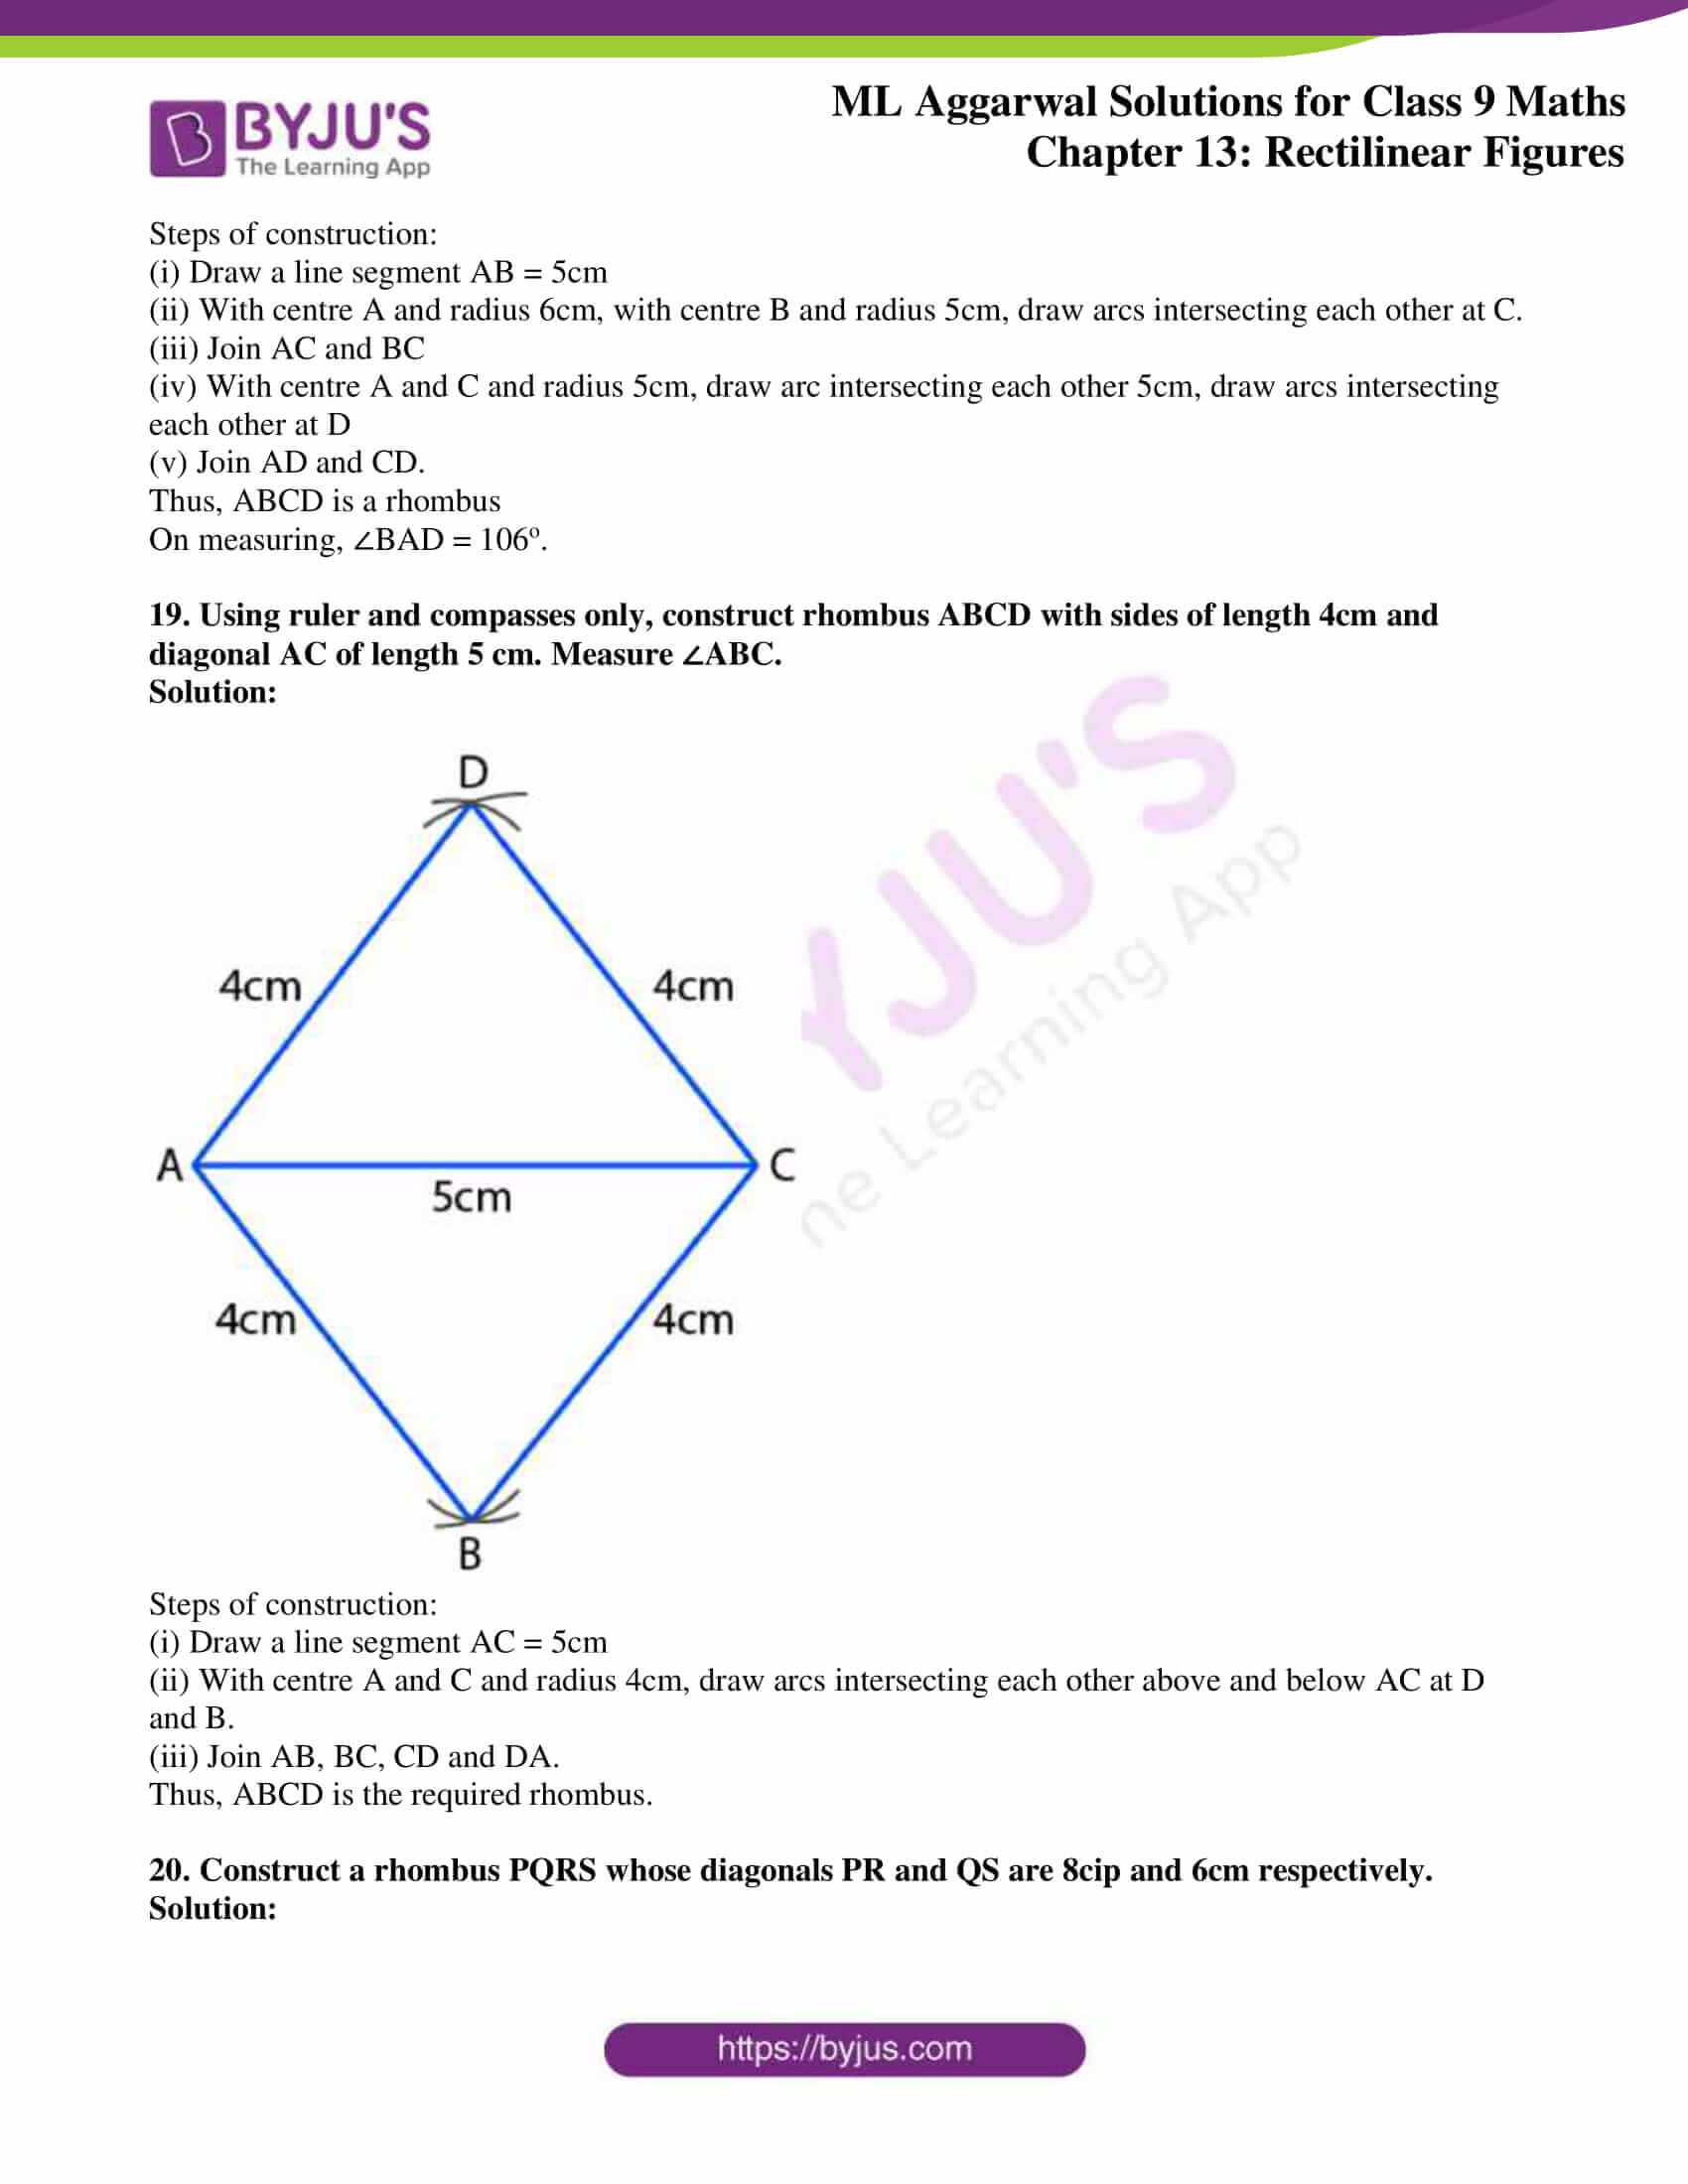 ml aggarwal solutions for class 9 maths chapter 13 35